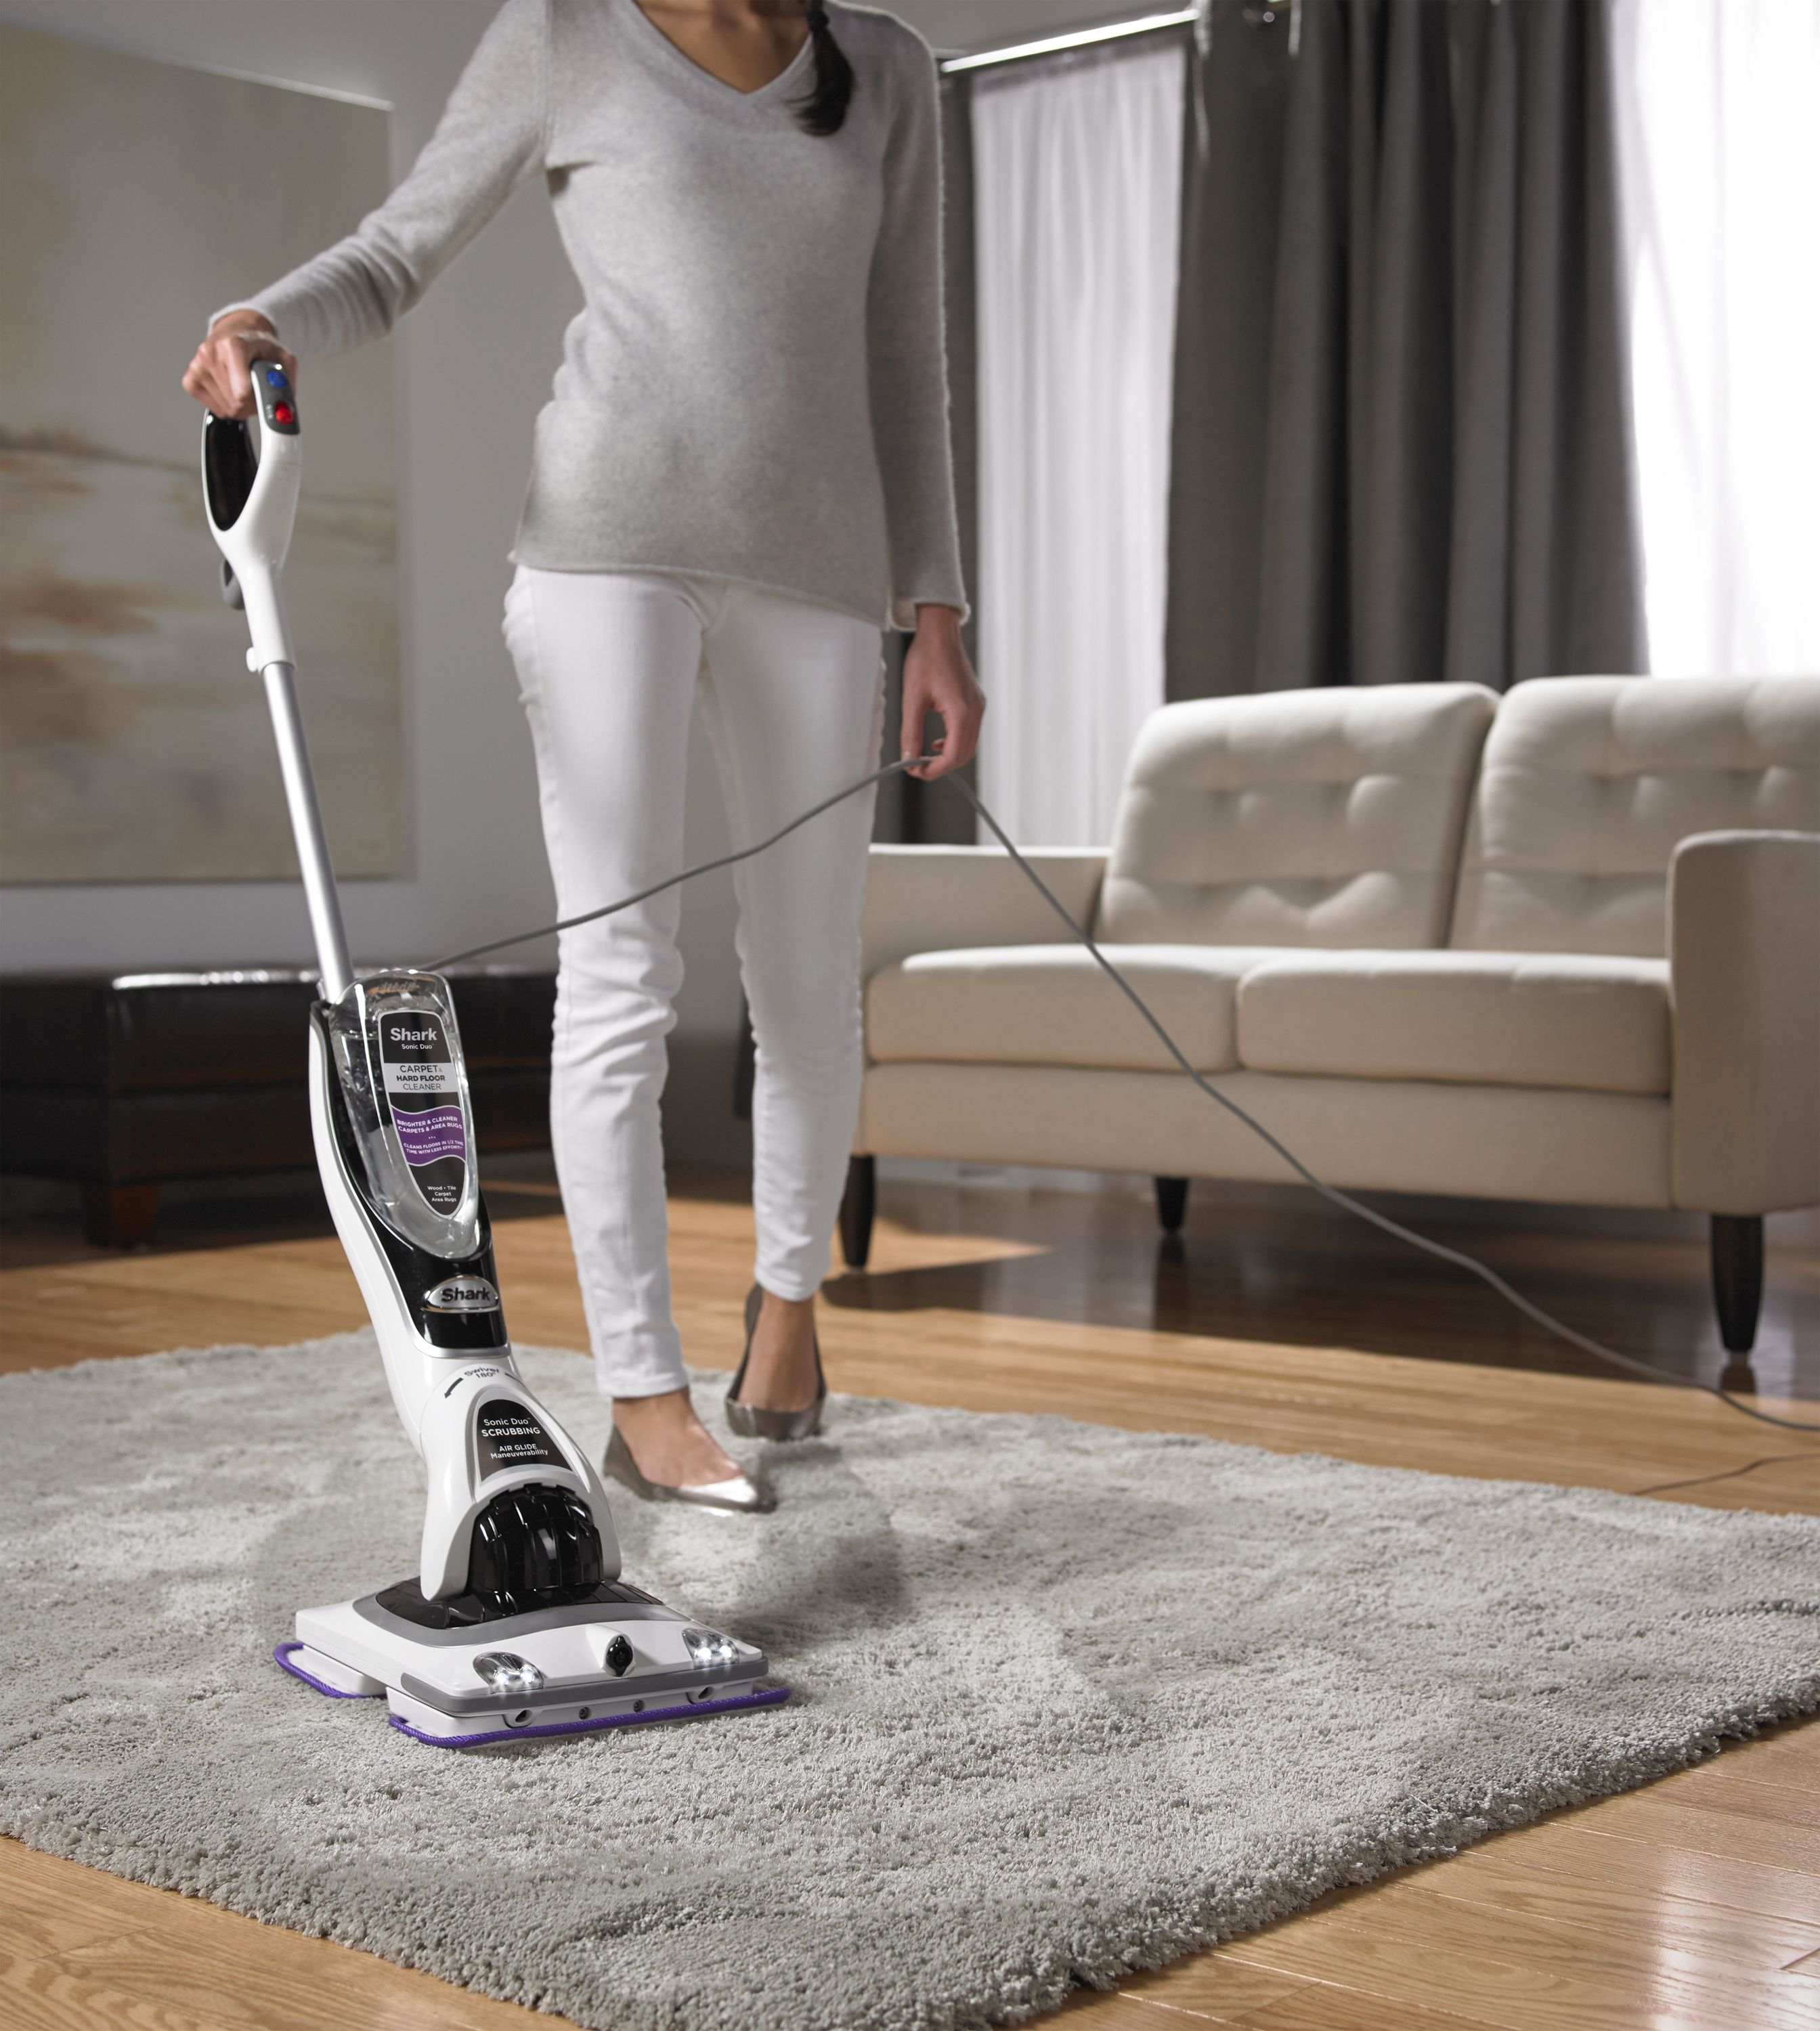 249 99 Vacuuming Is Not Enough To Lift And Remove Stuck